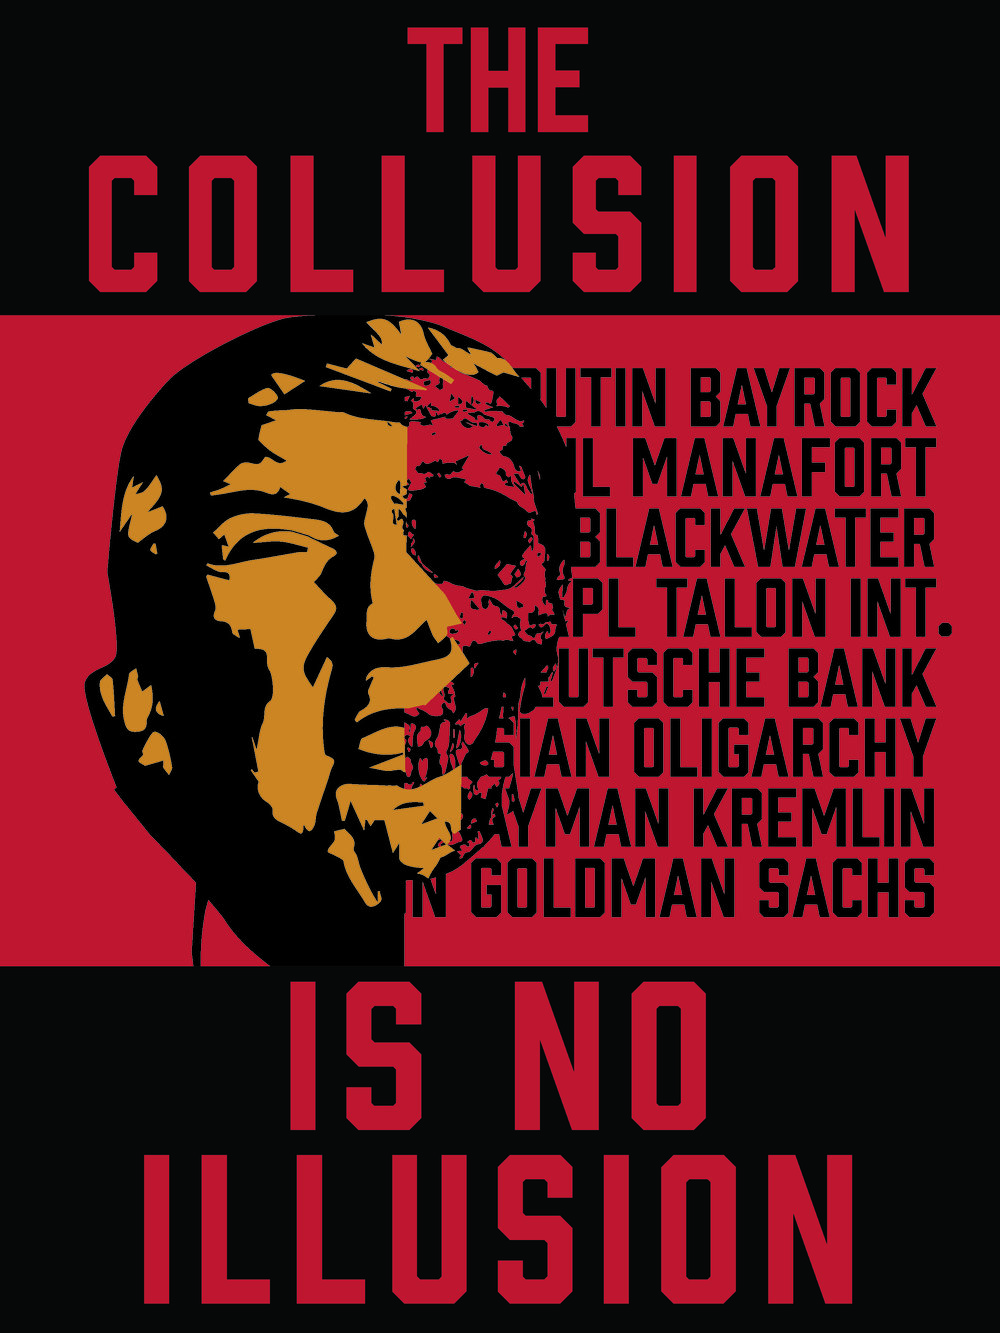 Tell your friends about the  Collusion  of the corporate hegemony with this protest poster!